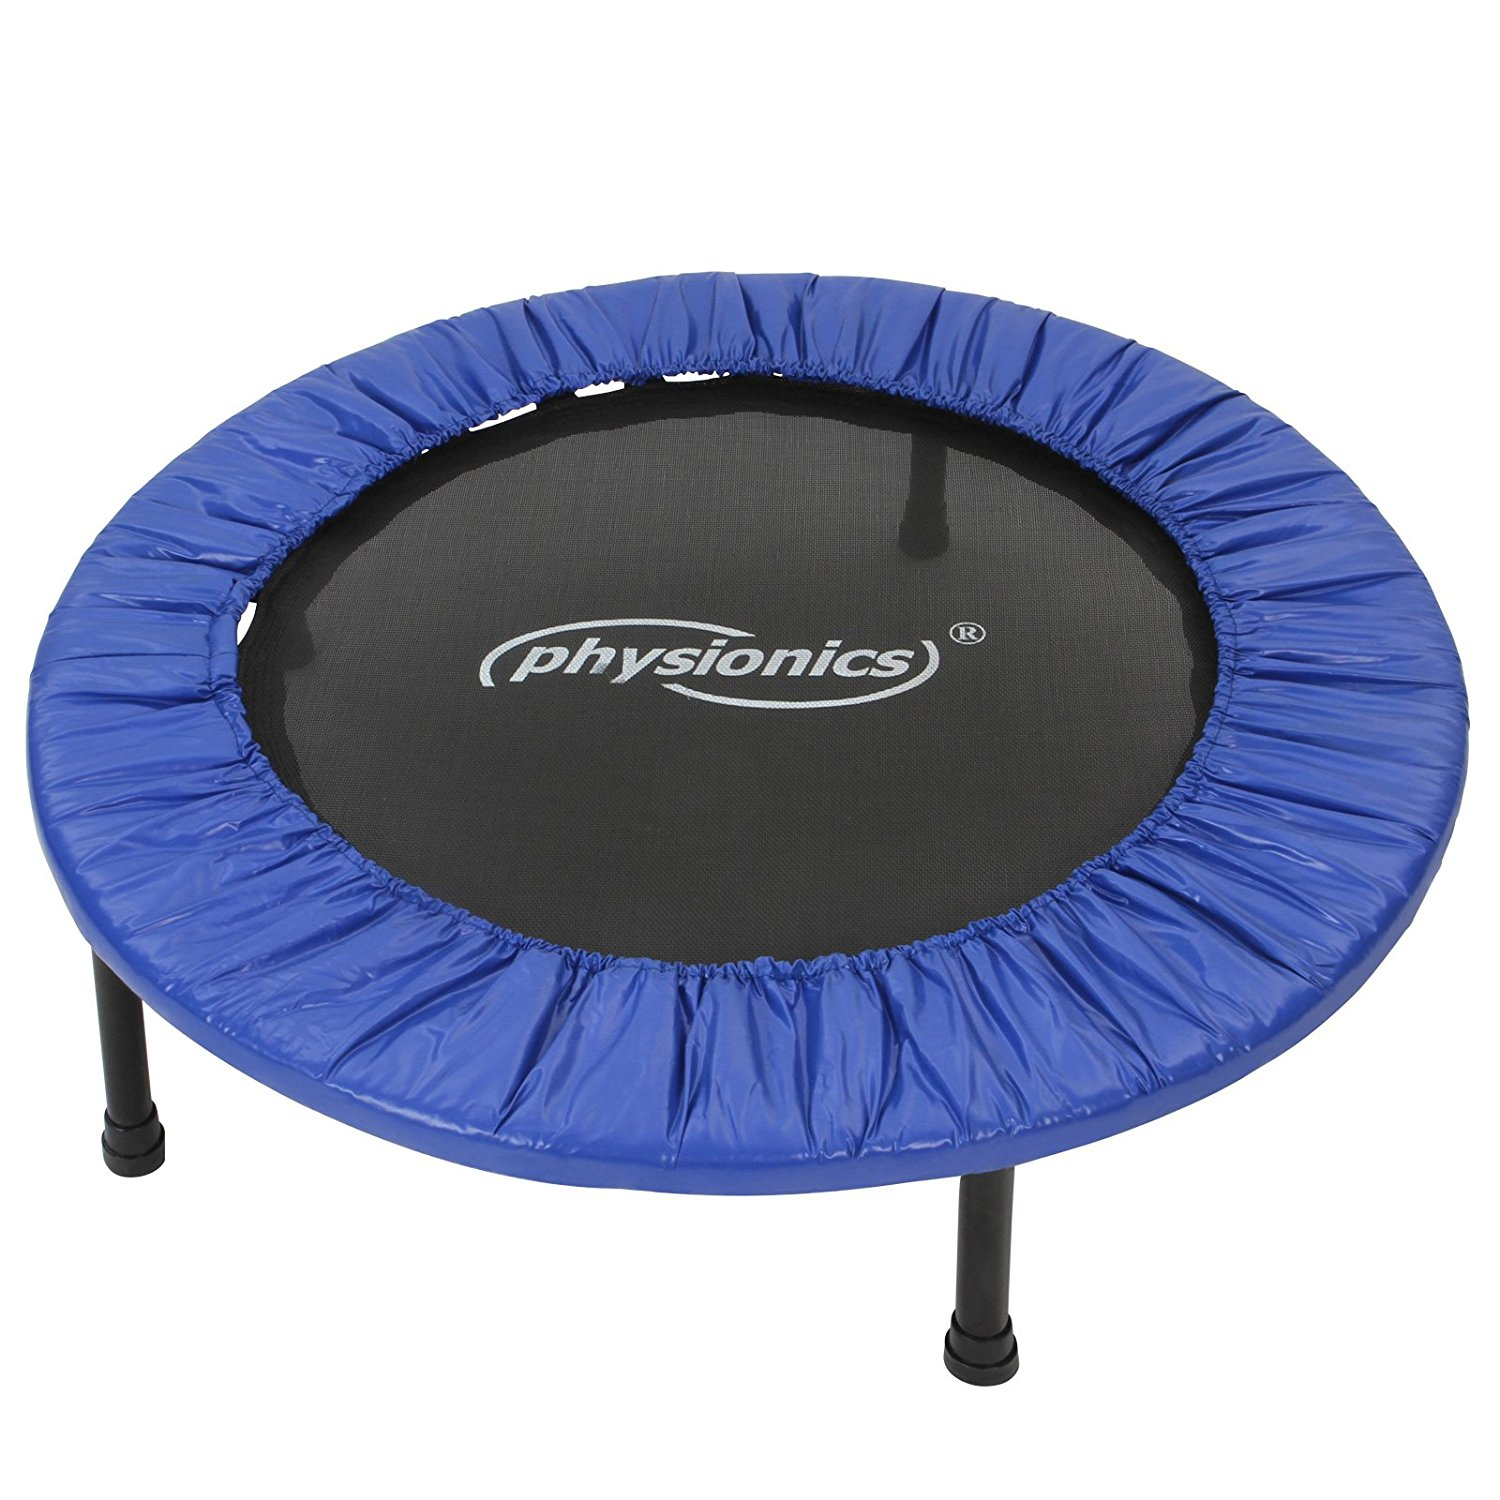 mini trampoline le comparatif meilleur trampoline. Black Bedroom Furniture Sets. Home Design Ideas